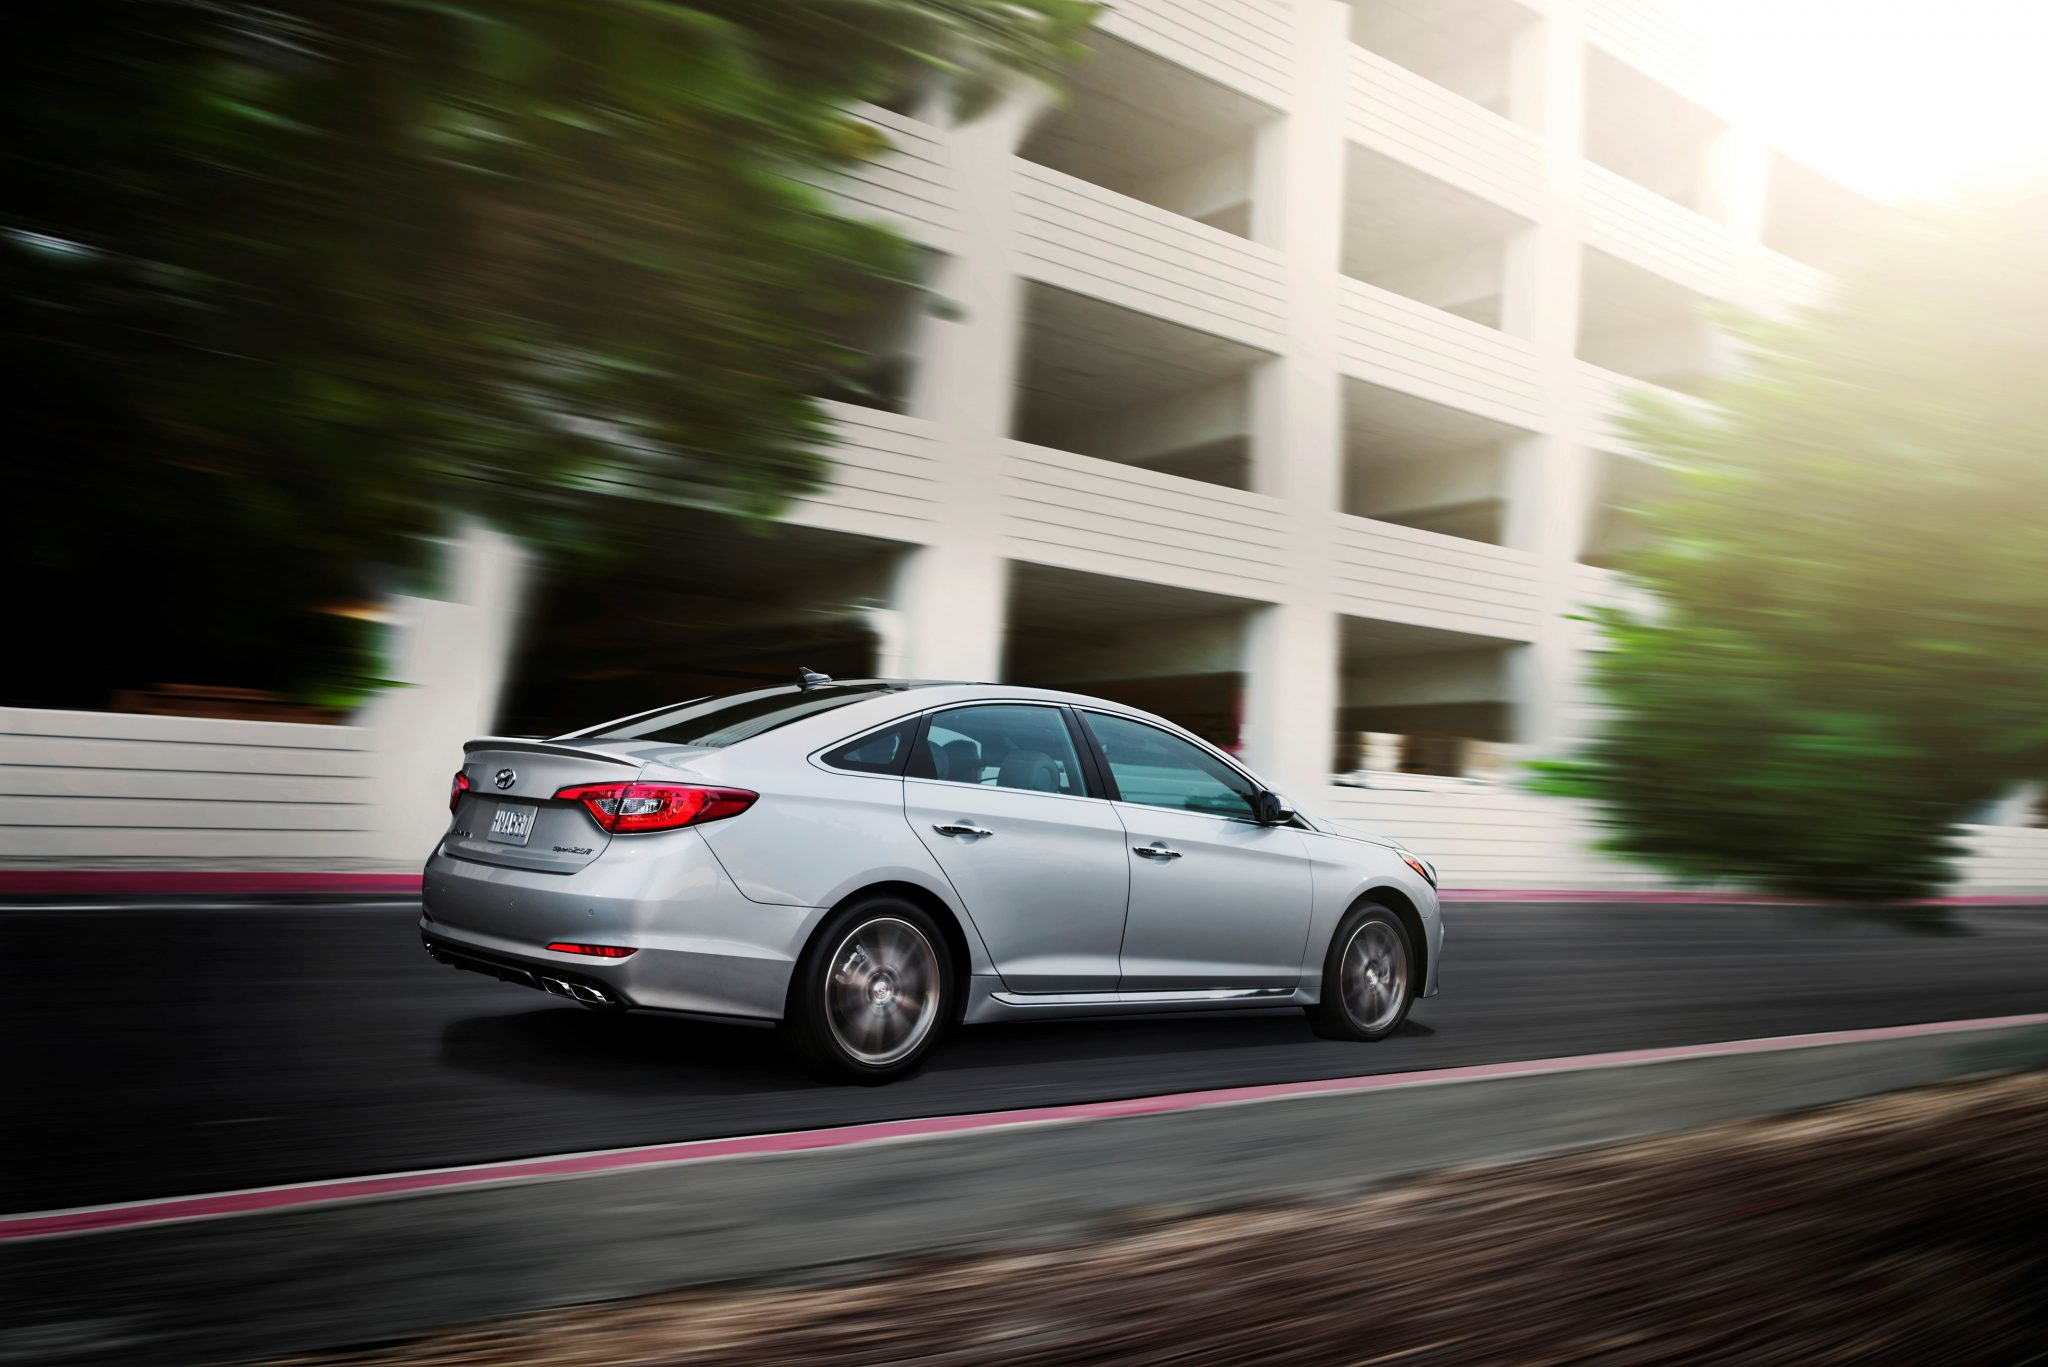 2015 Sonata the Top Safety Pick+